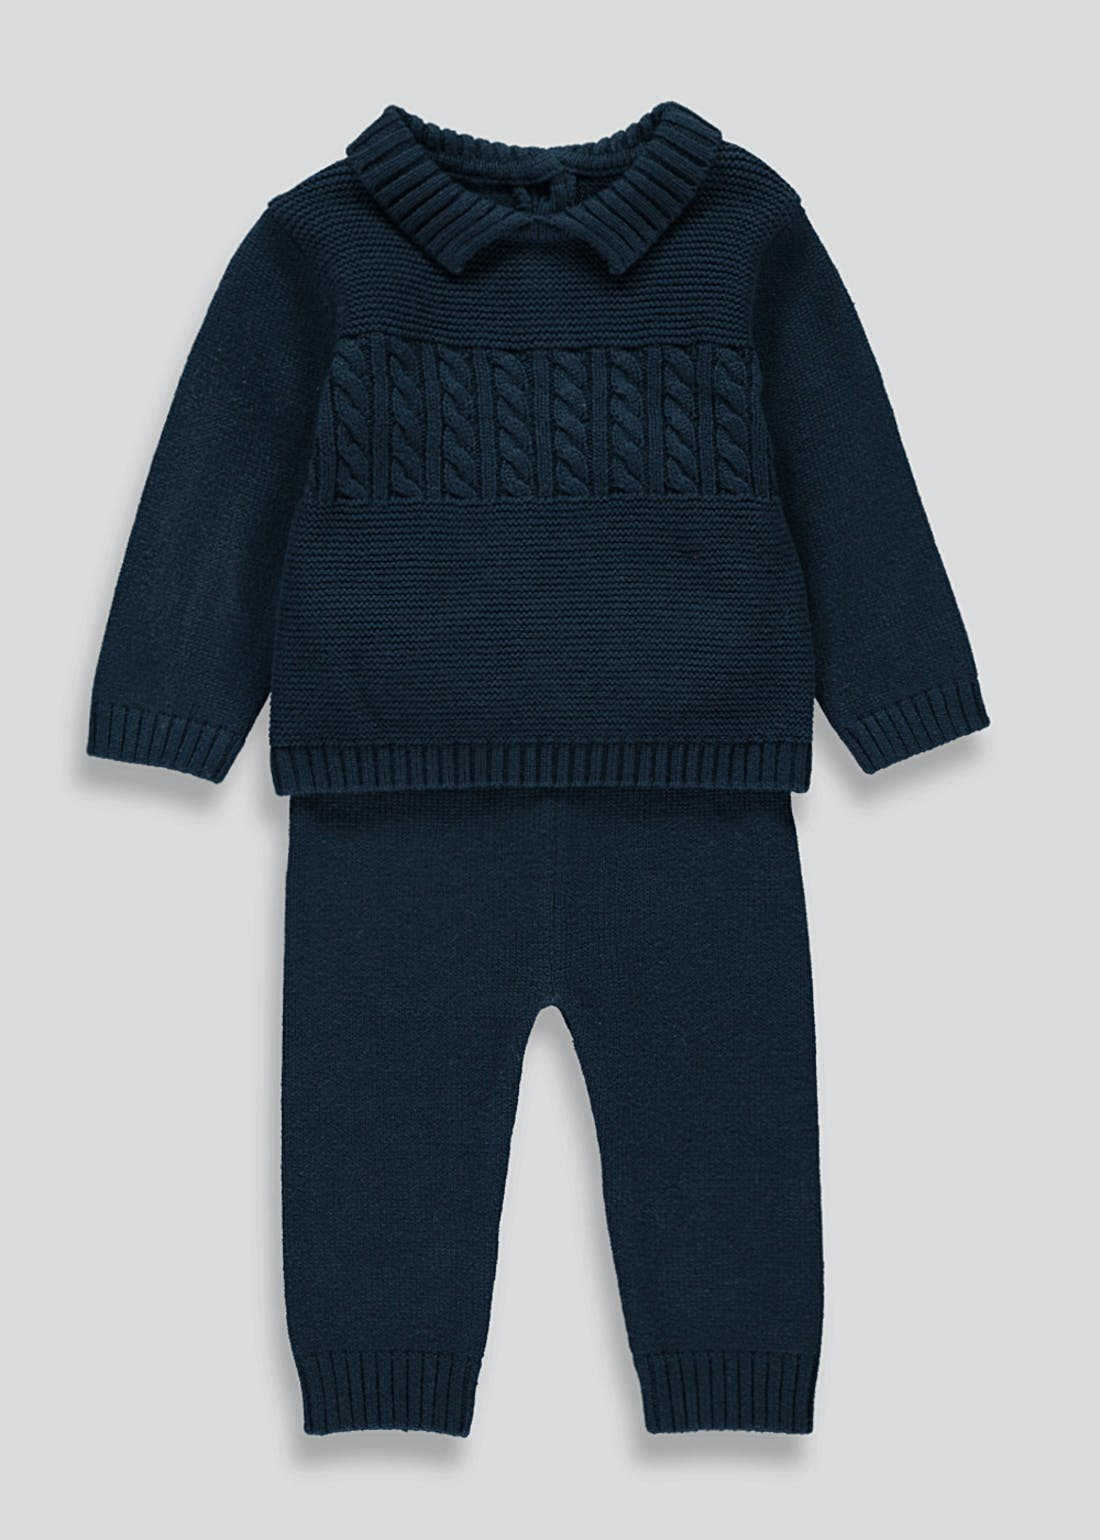 Boys Knitted Top & Bottoms Set (Newborn-23mths)